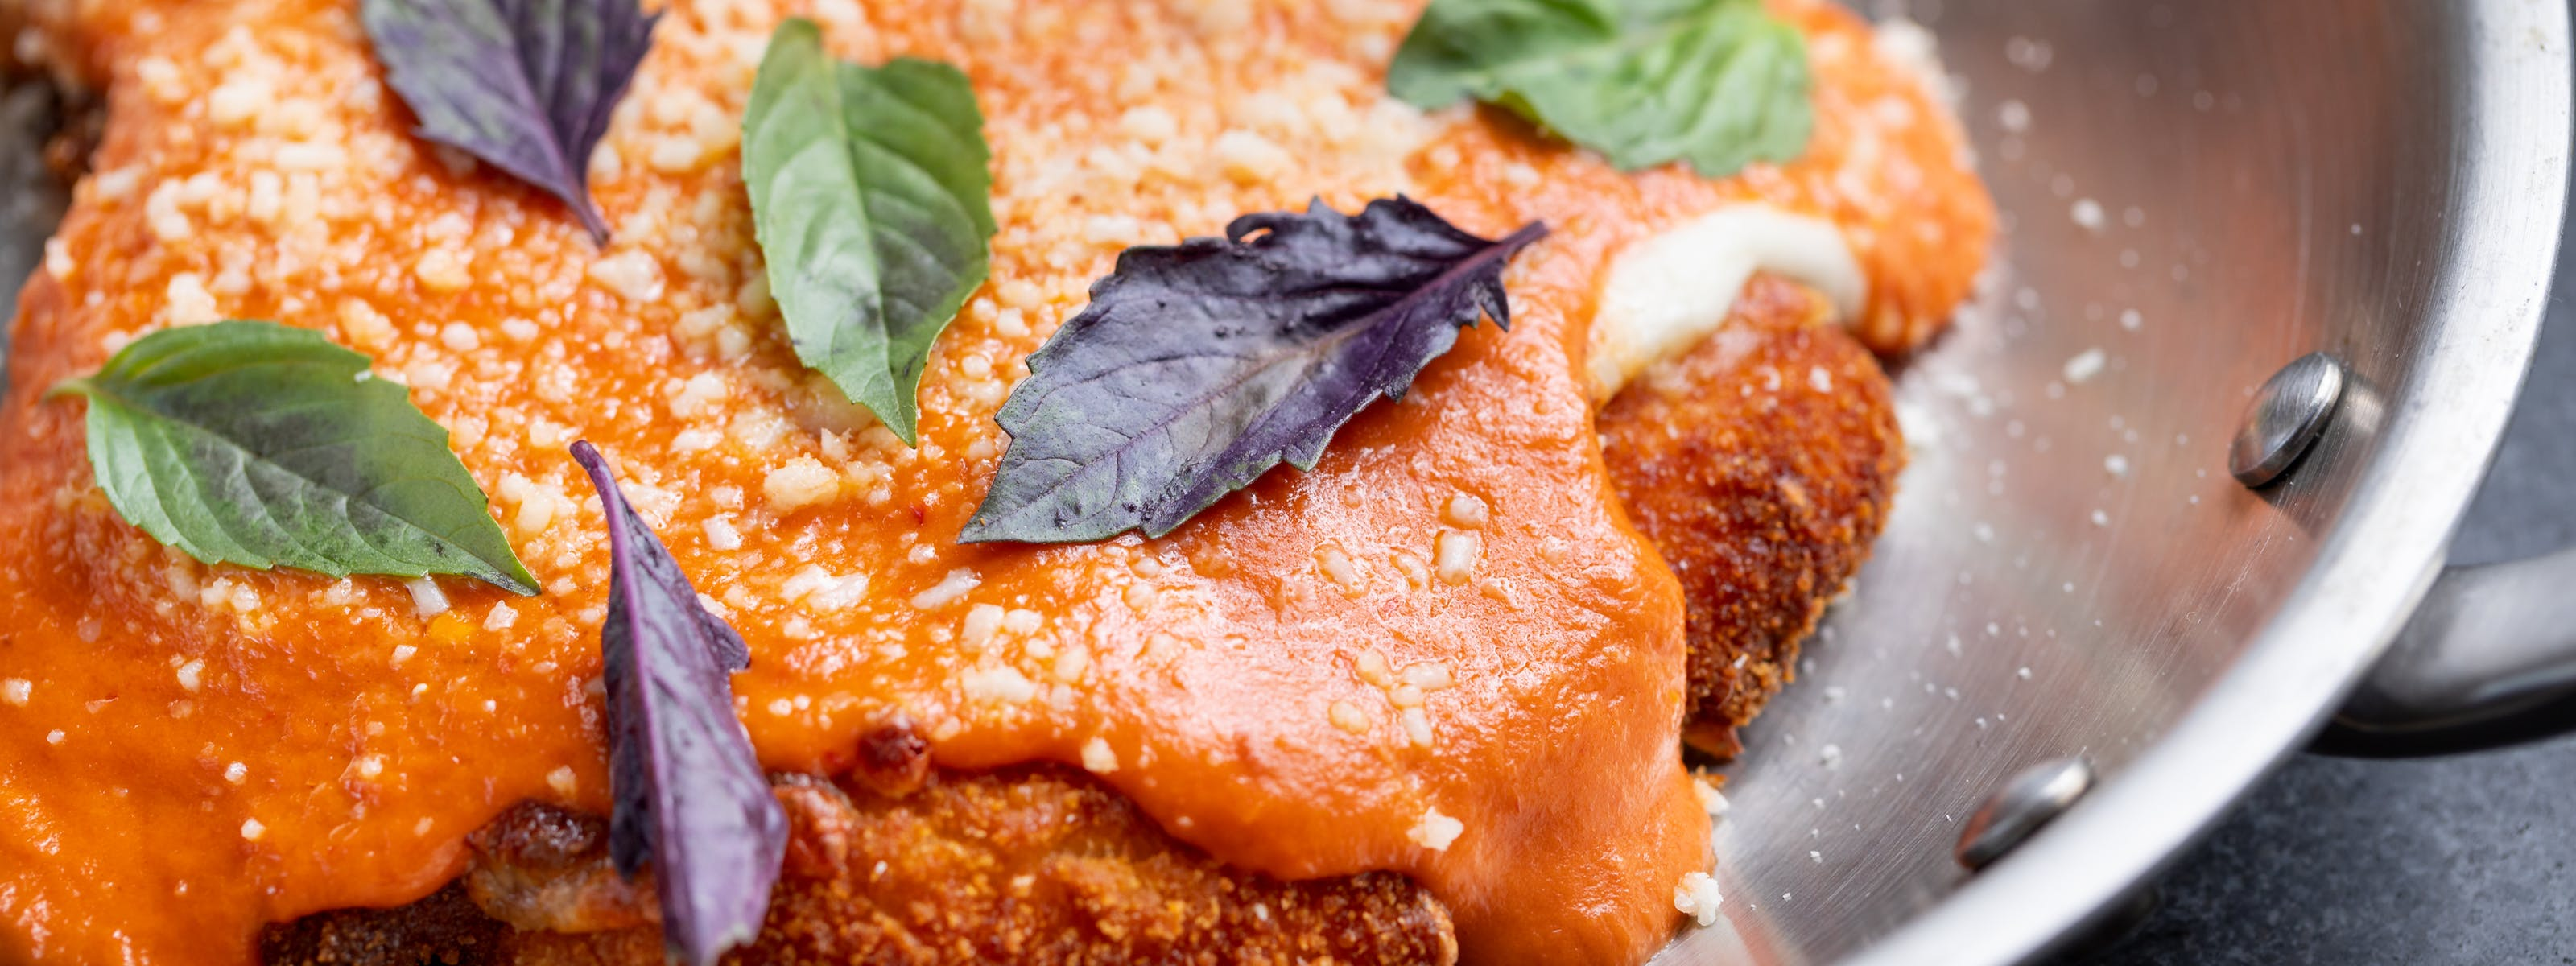 The Best Chicken Parmesan In LA - Los Angeles - The Infatuation